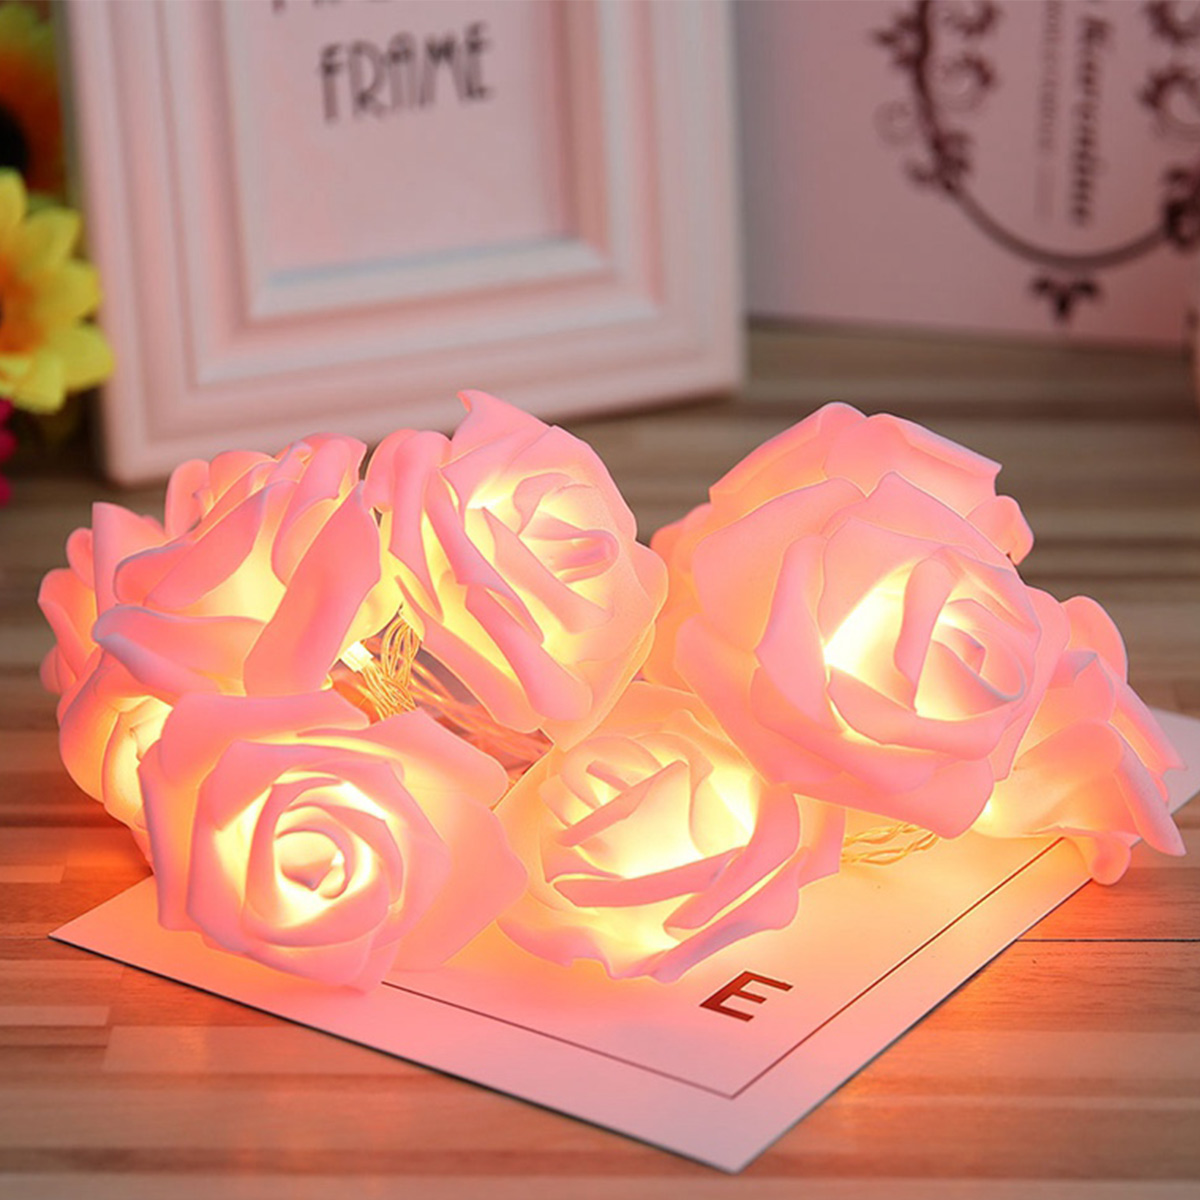 1M/2M LED Rose Flower Lights String DIY Bulbs Lamp Wall Ornaments For Christmas Holiday Valentine Wedding Decor Battery Operated